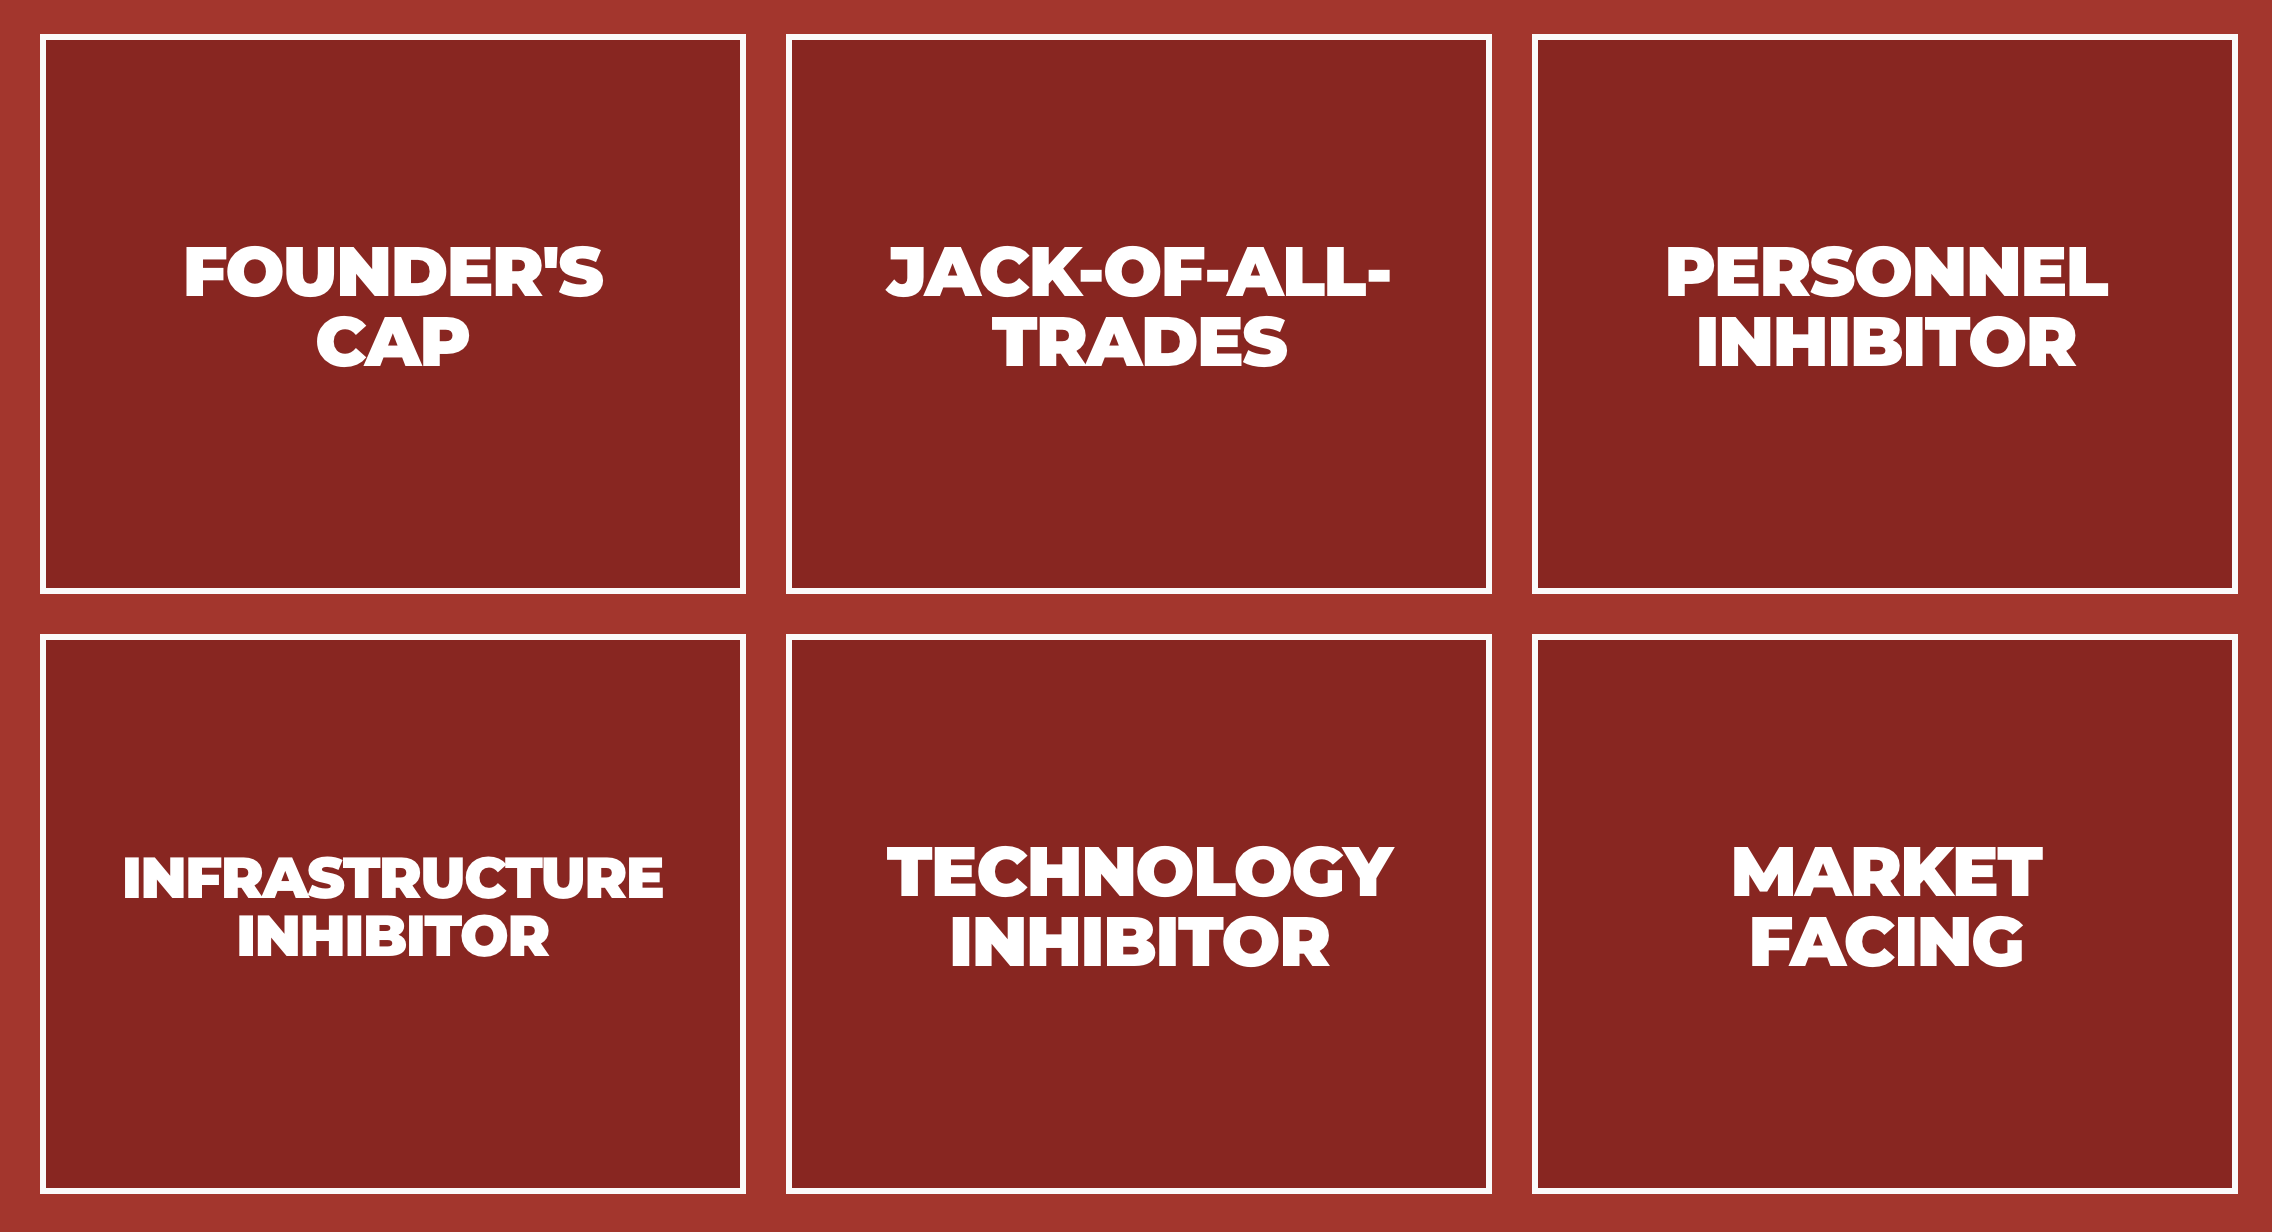 Founder's Cap, Jack-of-all-trades, Personnel Inhibitor, Infrastructure Inhibitor, Technology Inhibitor, Market Facing